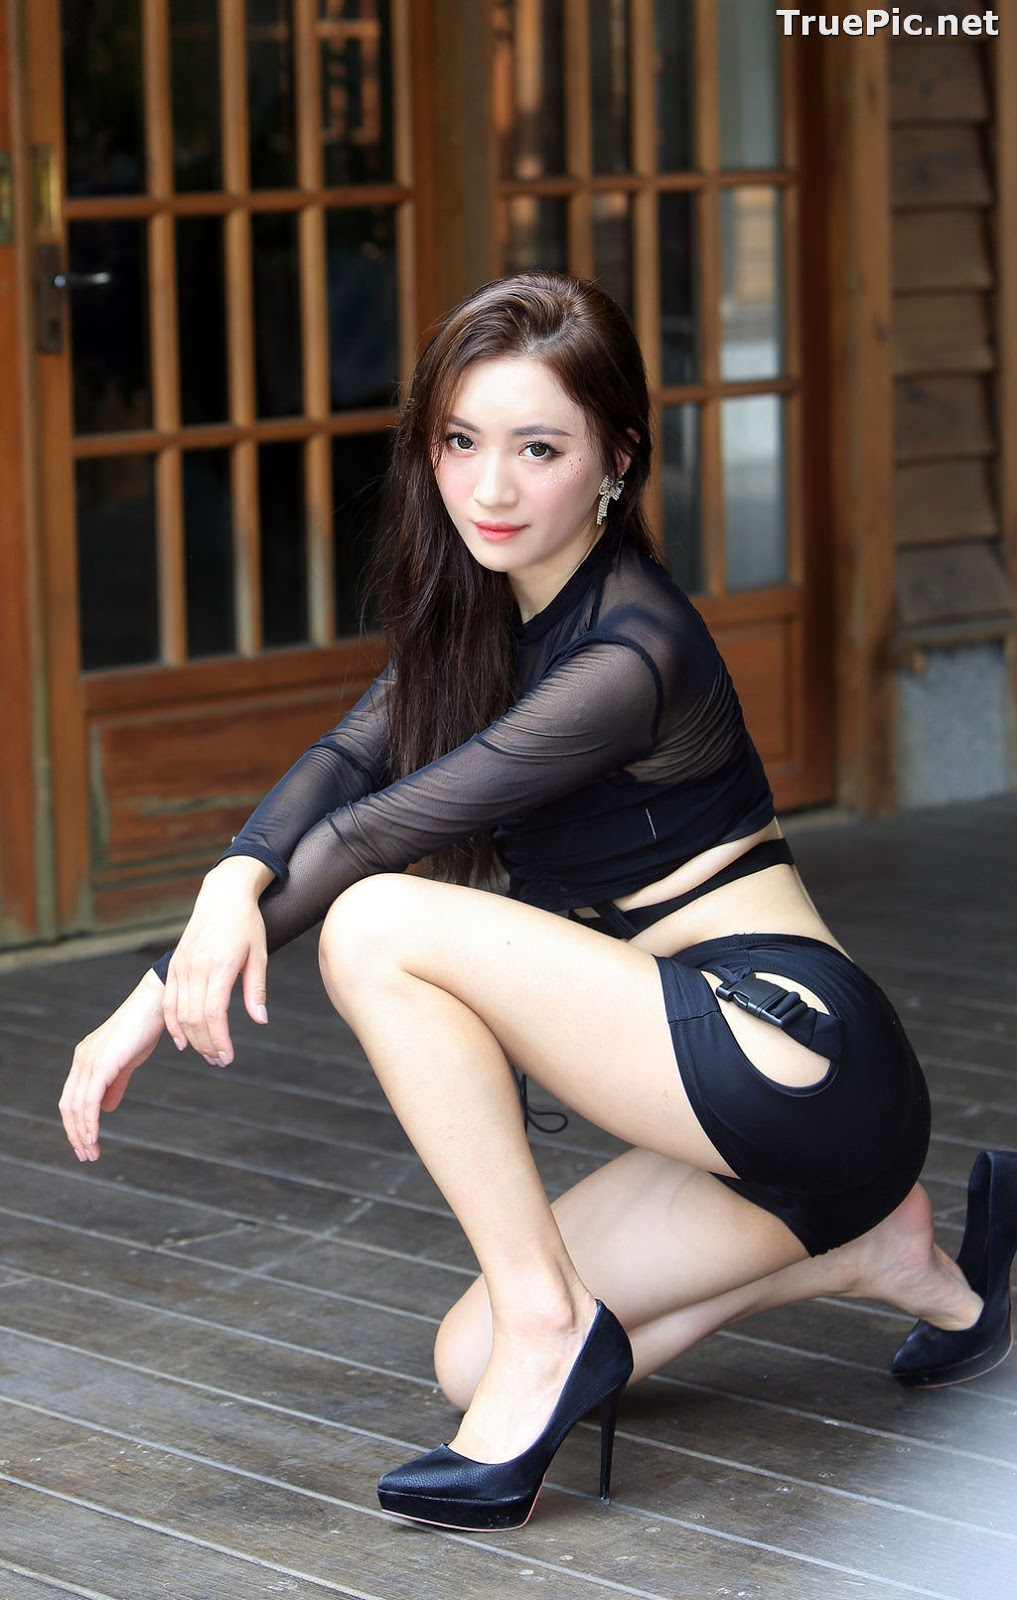 Image Taiwanese Model - 乖寶 - Pretty and Vivid Showgirl - TruePic.net - Picture-42